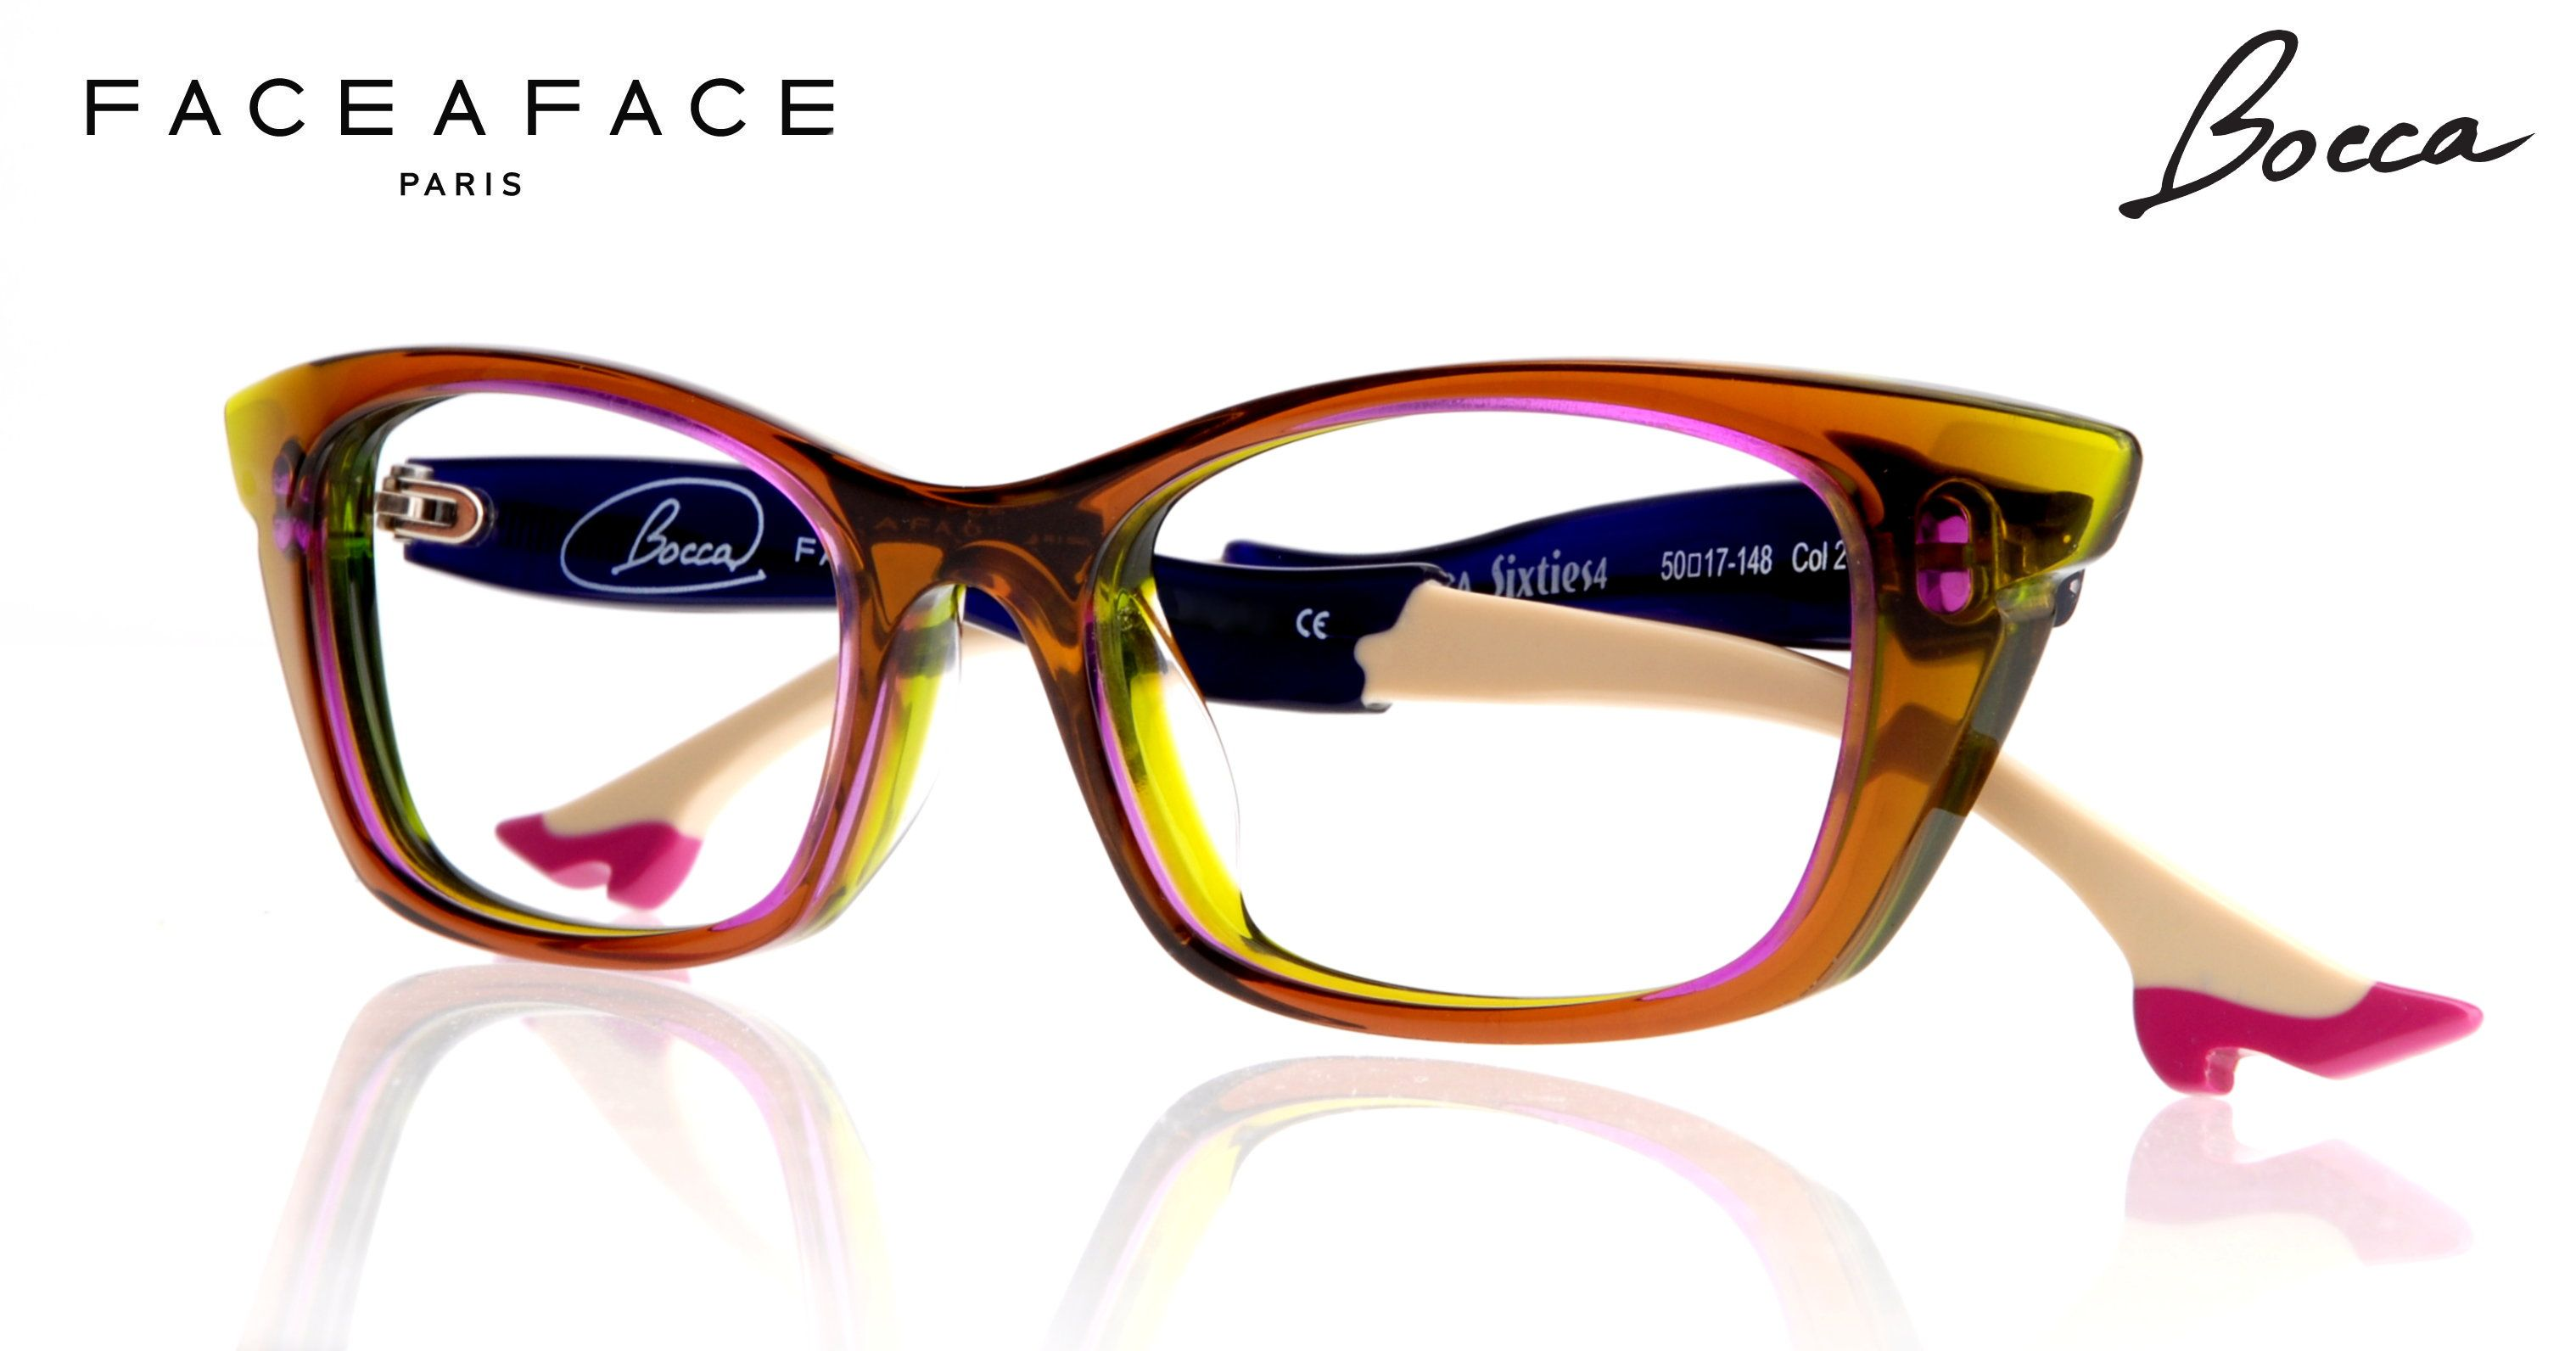 Face a Face BOCCA eyewear with legs and shoes. www